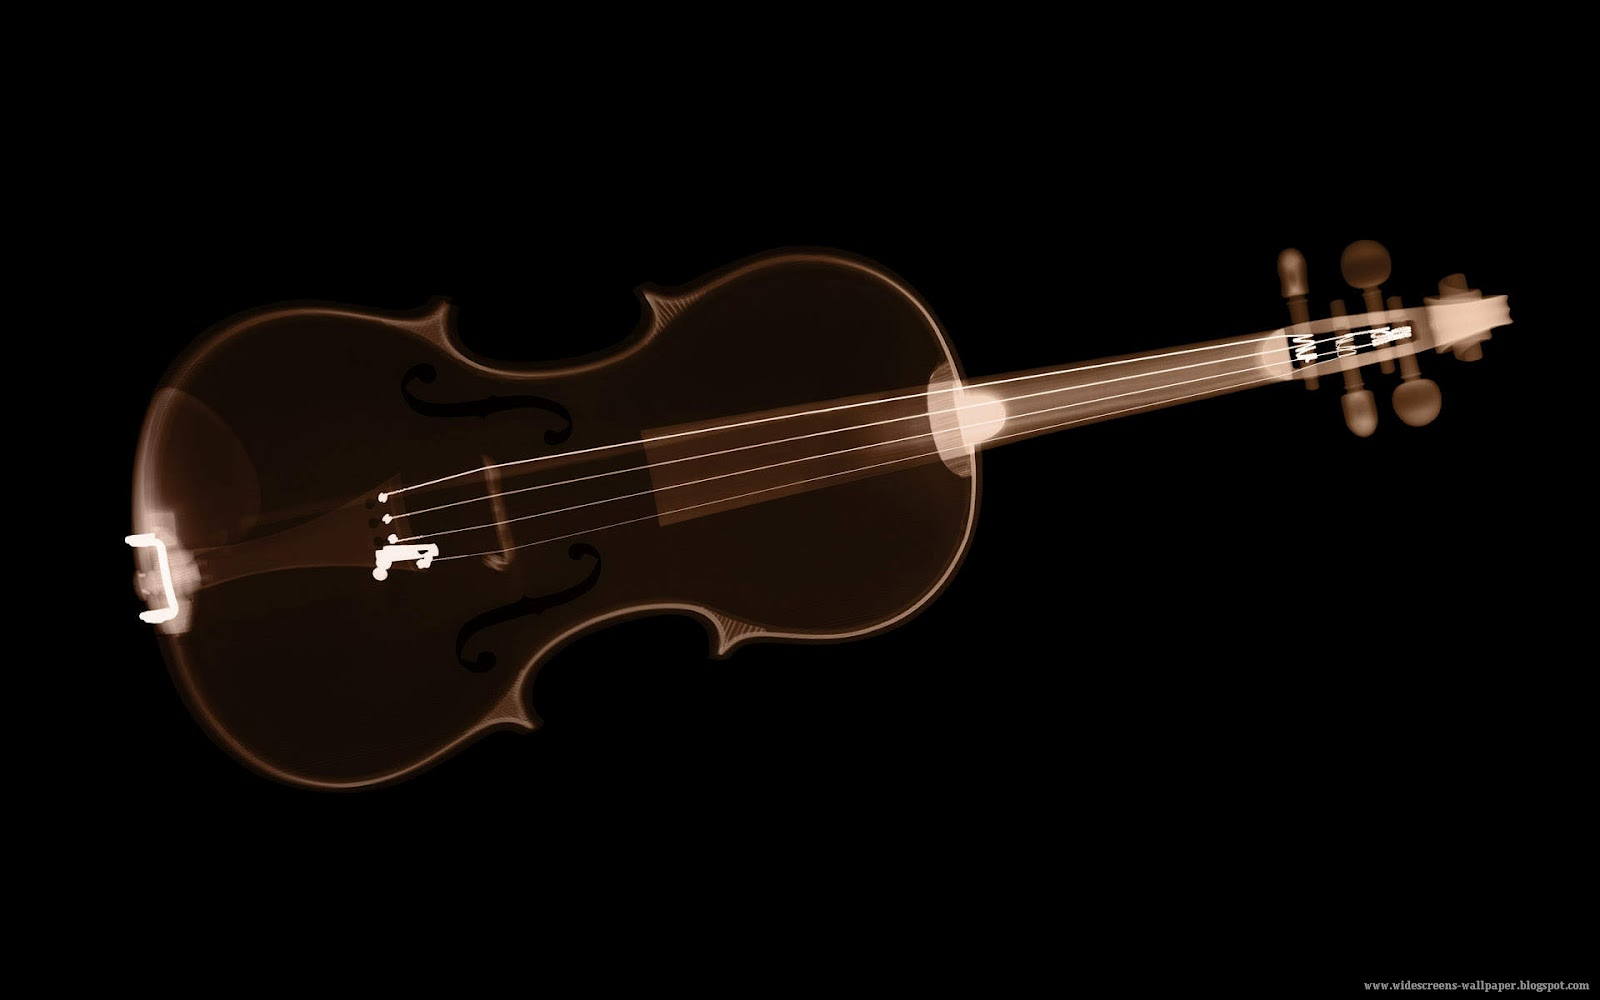 Violin Wallpaper: Wallpaper Collection For Your Computer And Mobile Phones